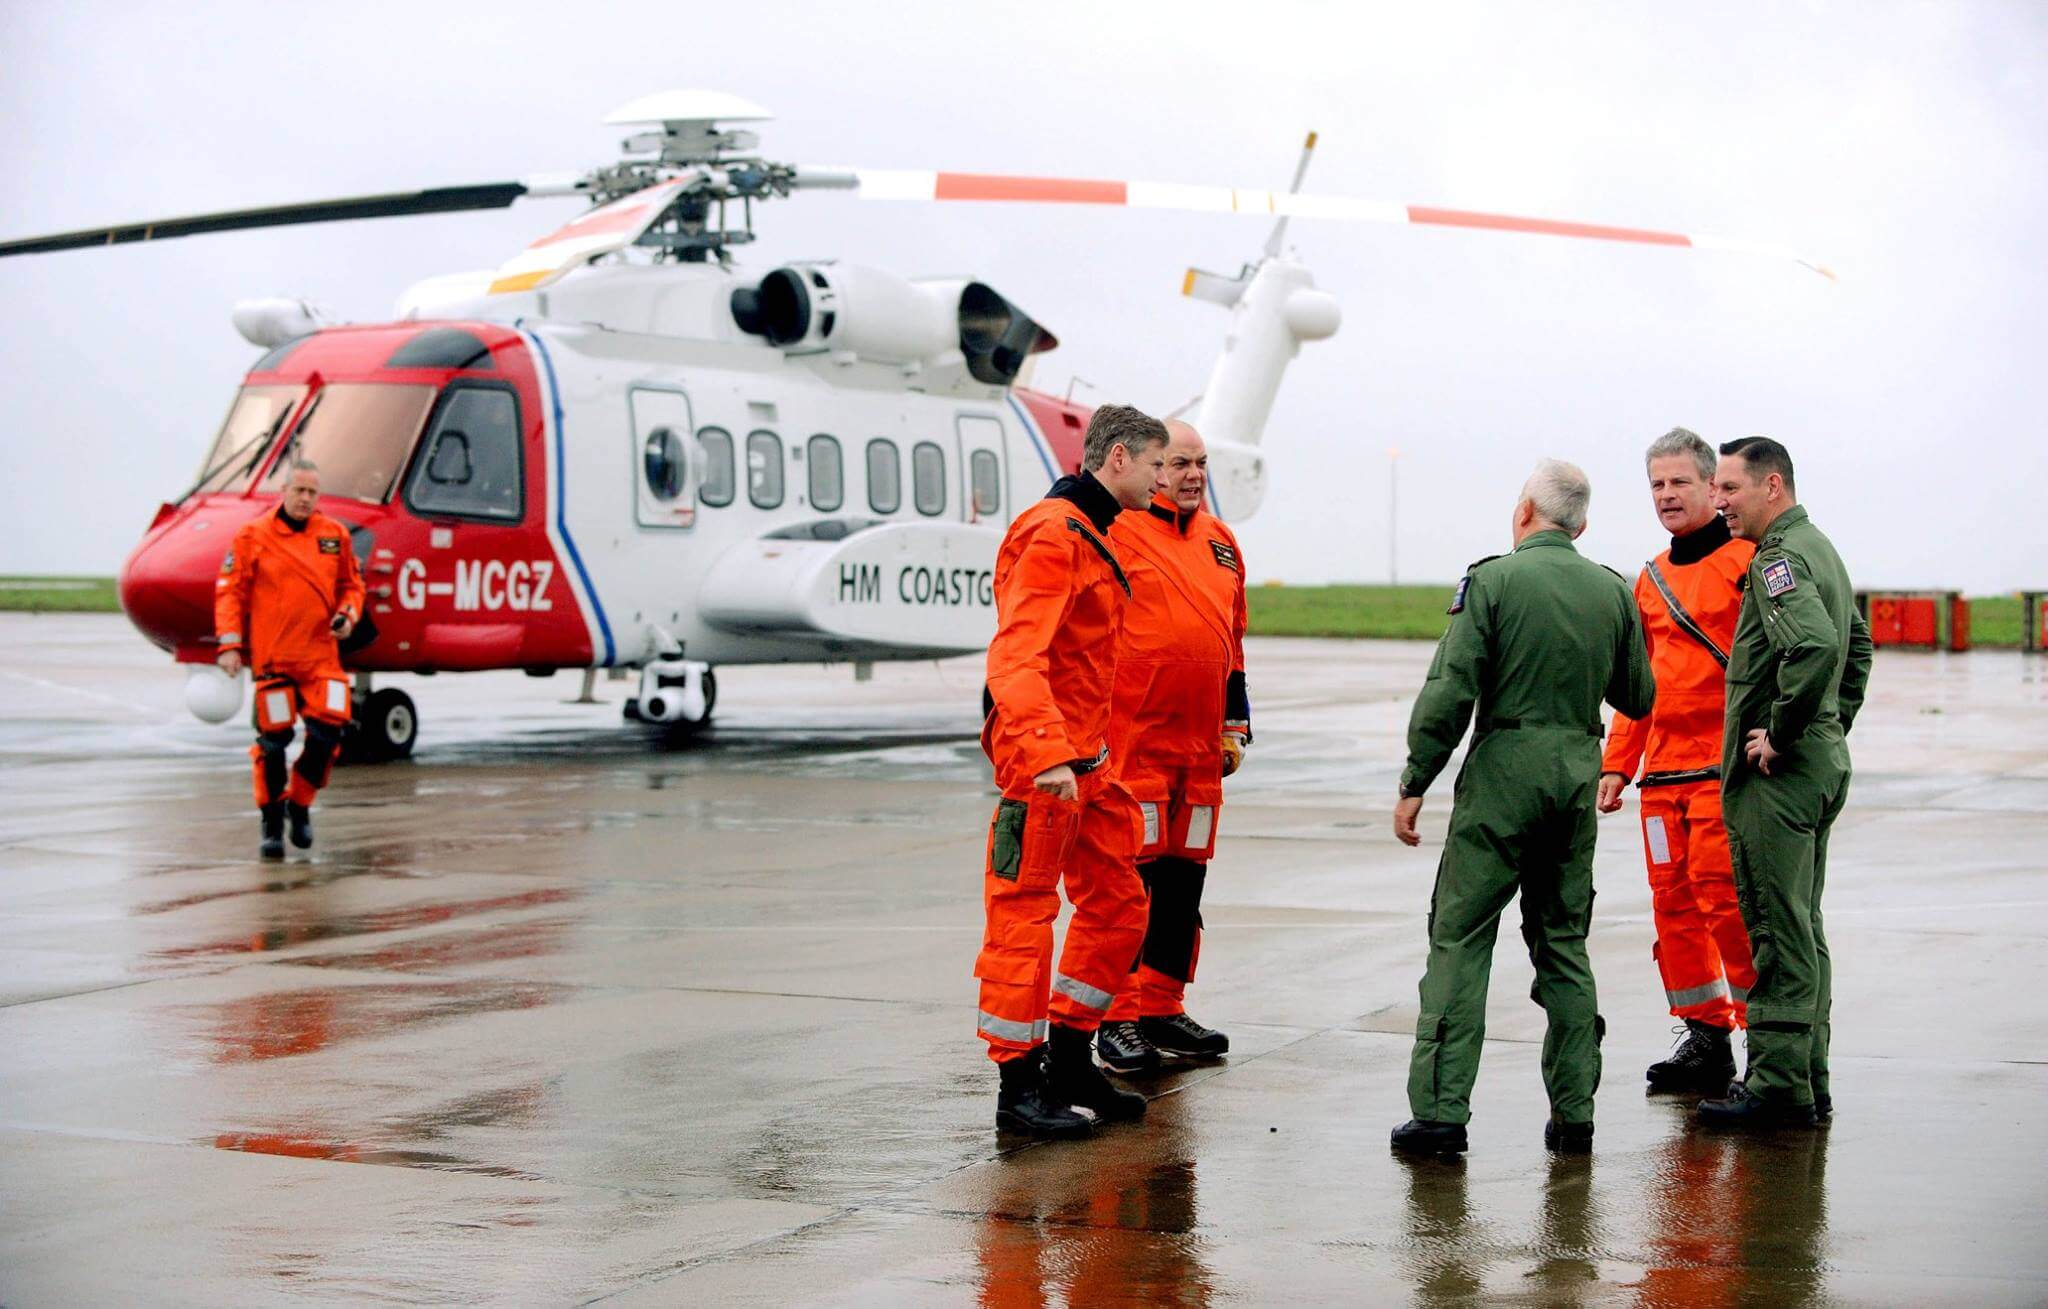 Naval aircrew meet their civilian replacements at handover ceremony at RNAS Culdrose. Note the size of the Sikorsky SH